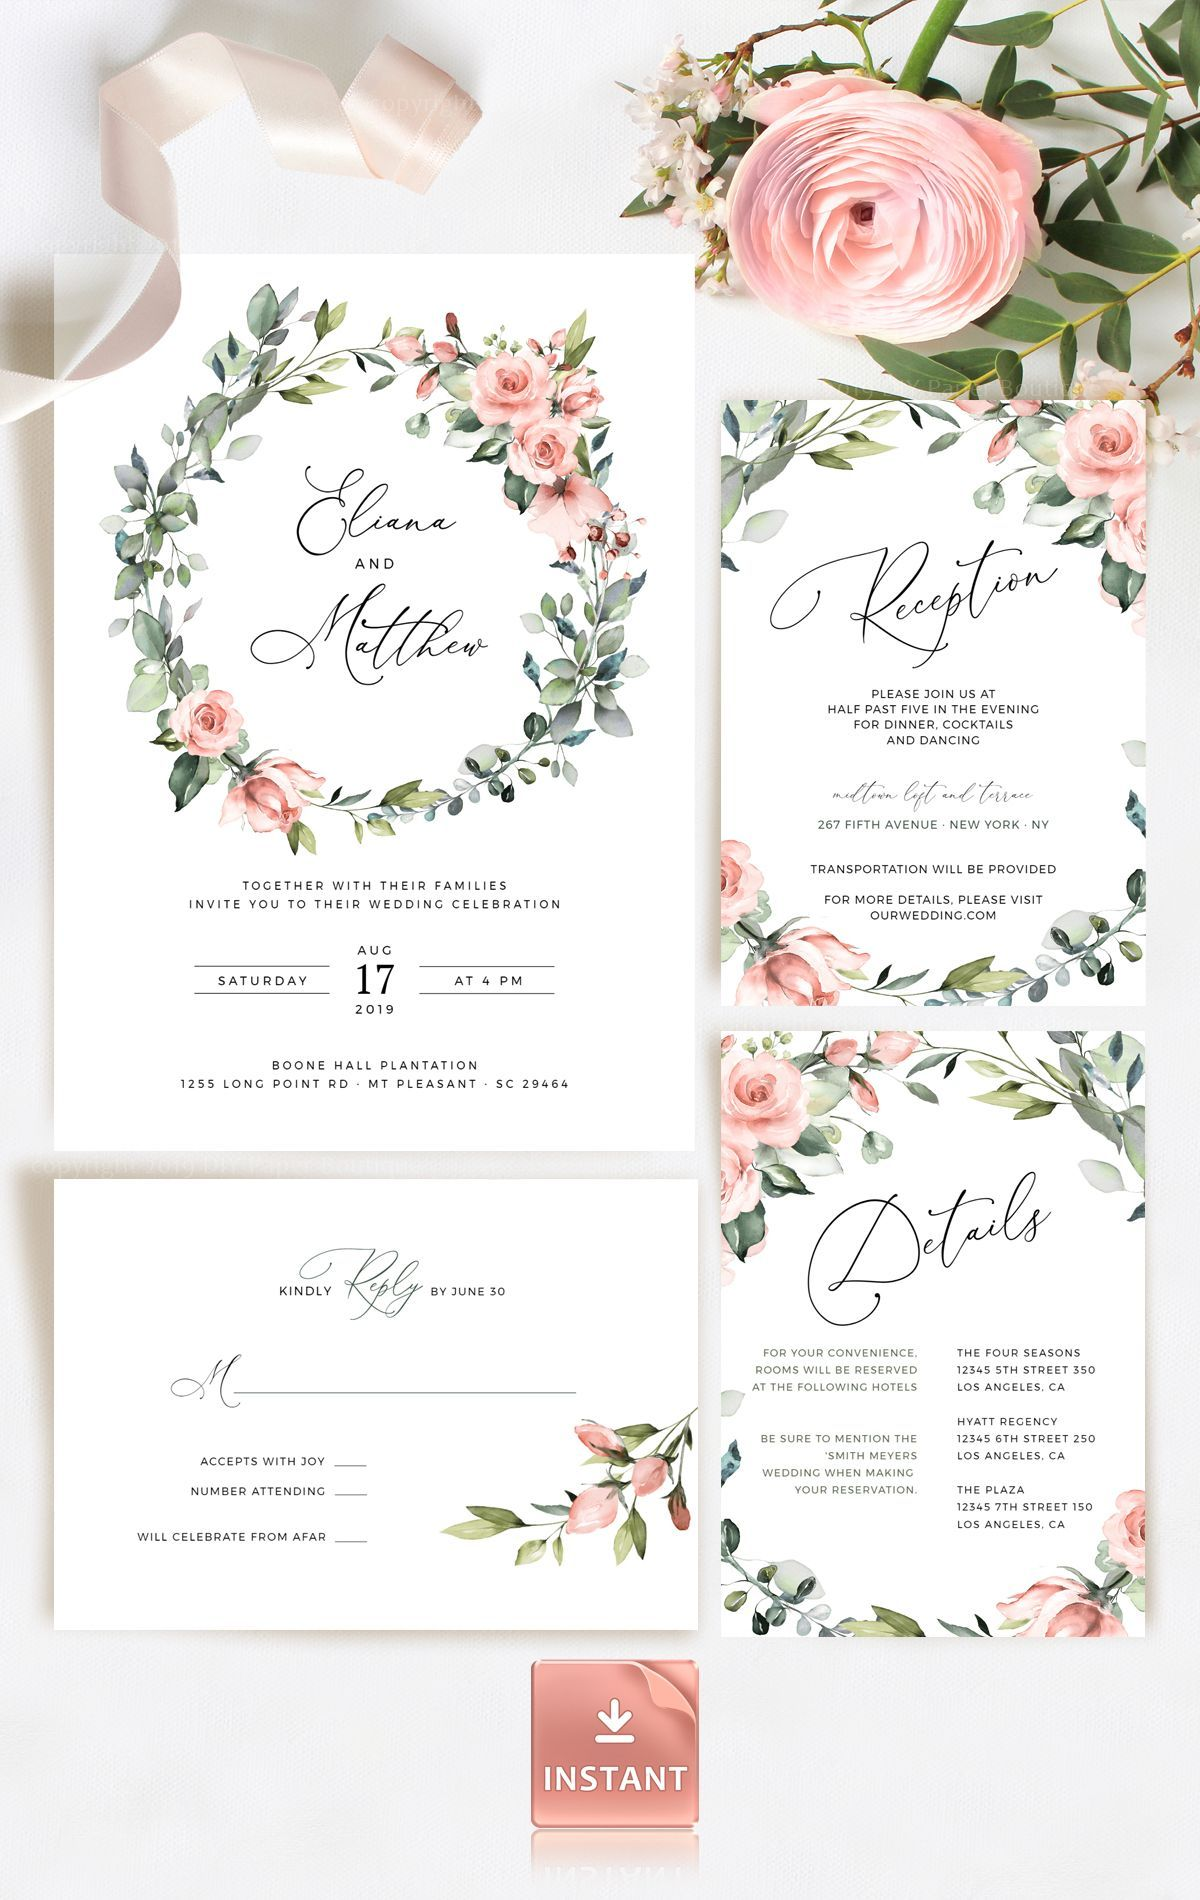 Wedding Invitation Template Kit with Greenery, Red Roses and